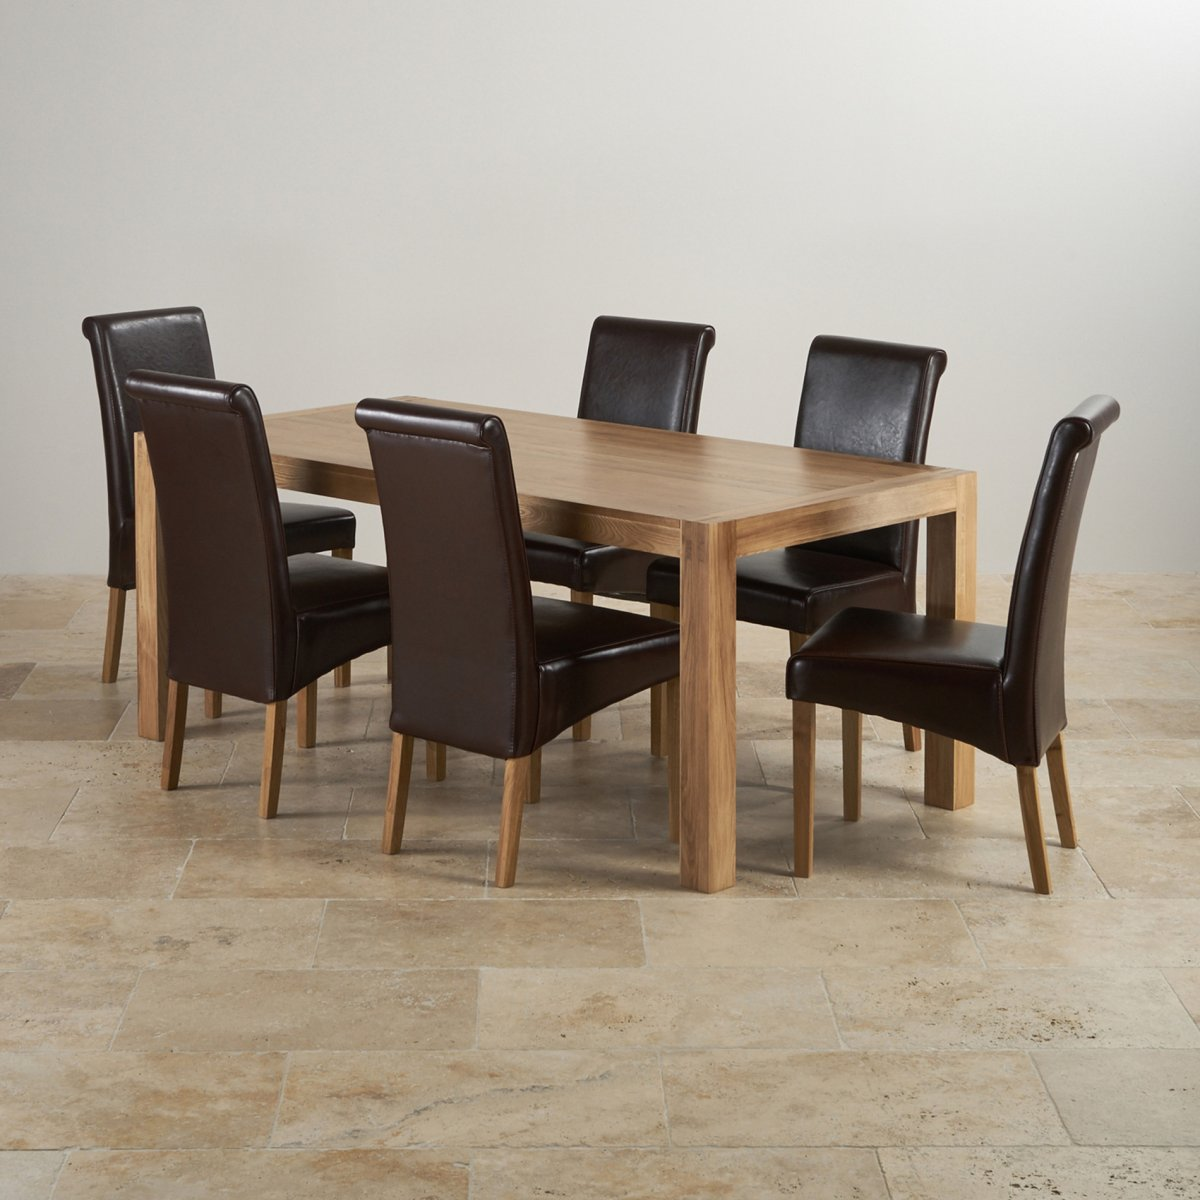 oak dining set 6 chairs white high back office chair alto in table 43 brown leather